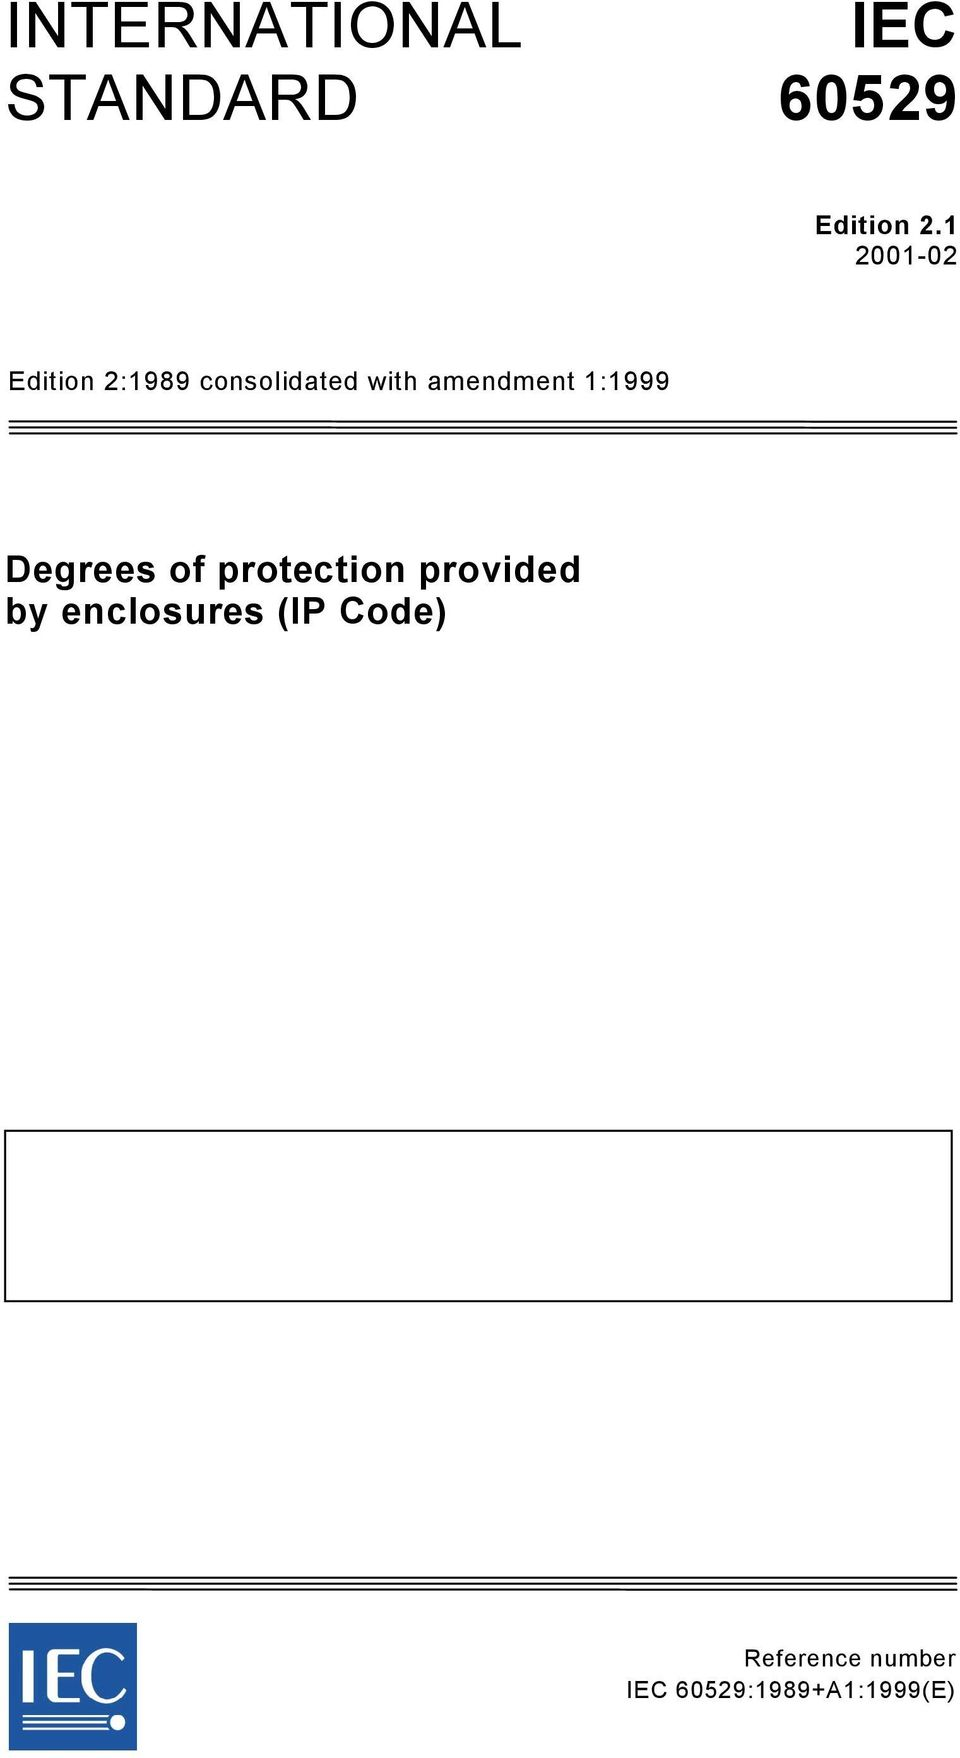 ANSI/IEC Degrees of Protection Provided by Enclosures (IP